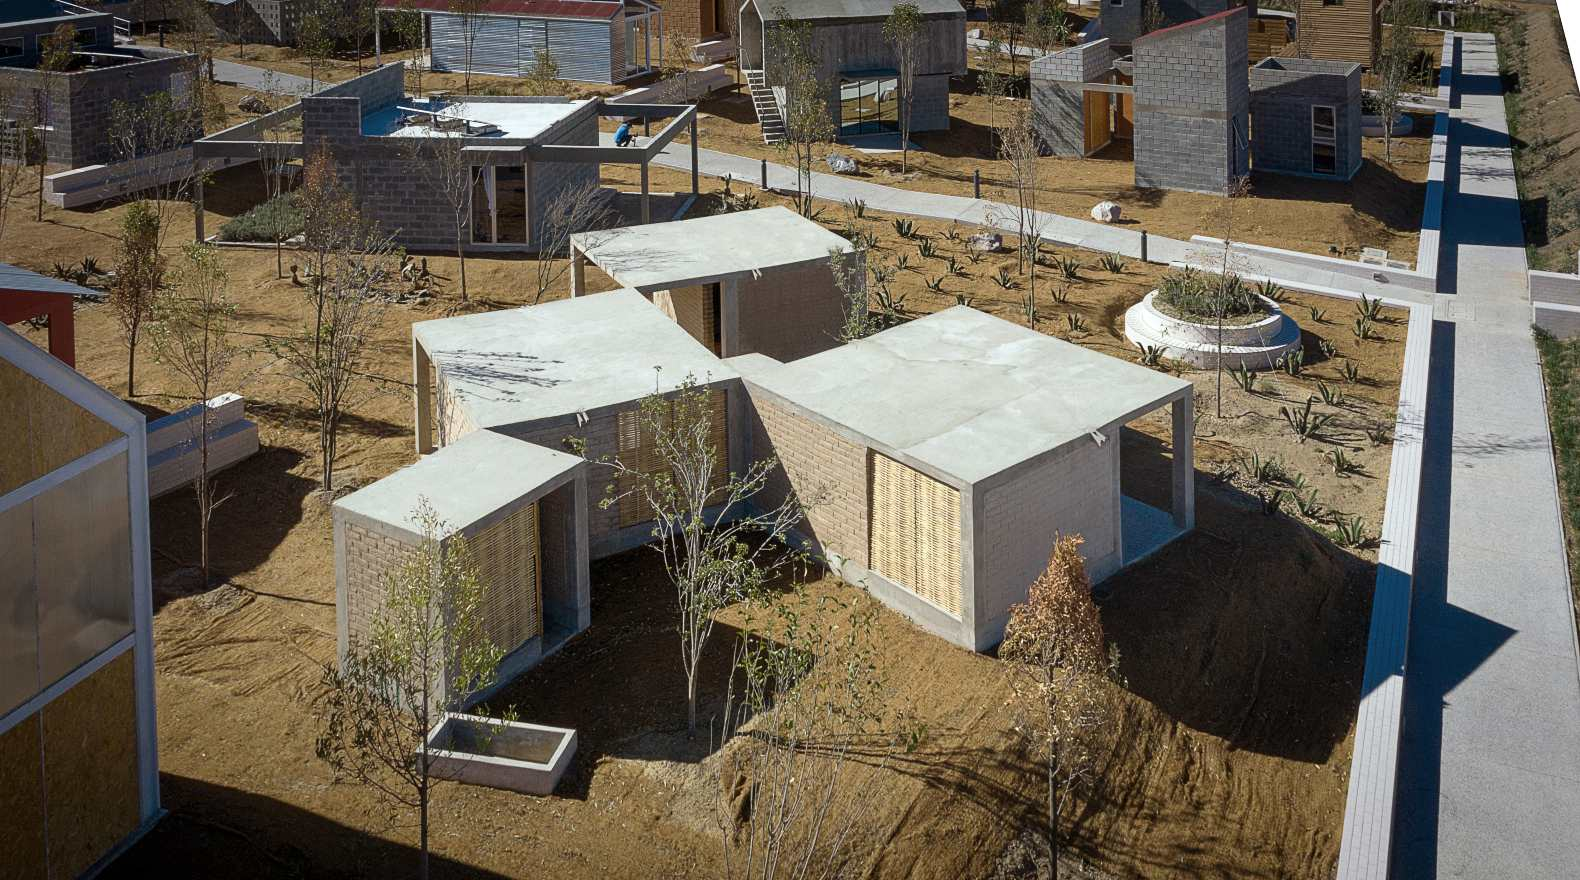 Rural, modular home in Mexico allows for a wide variety of configurations